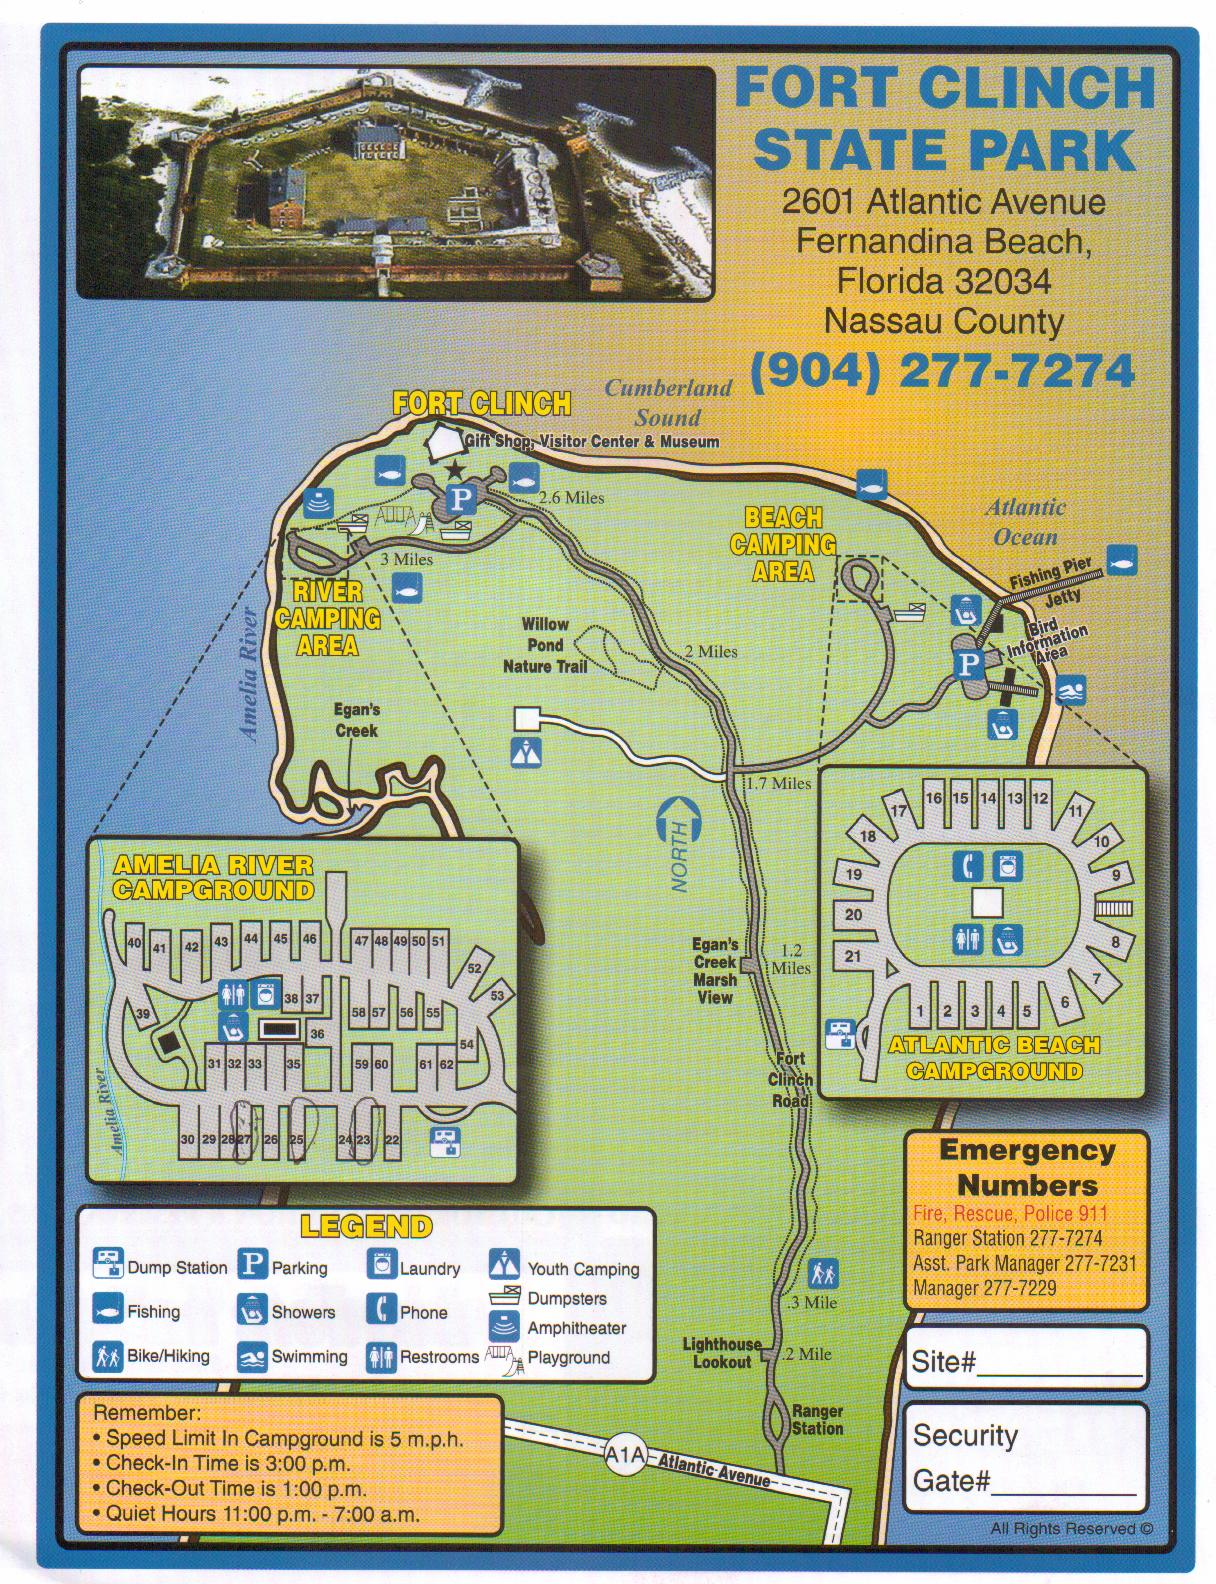 Adventures Of Toaster Fort Clinch State Park Part - Florida map state parks